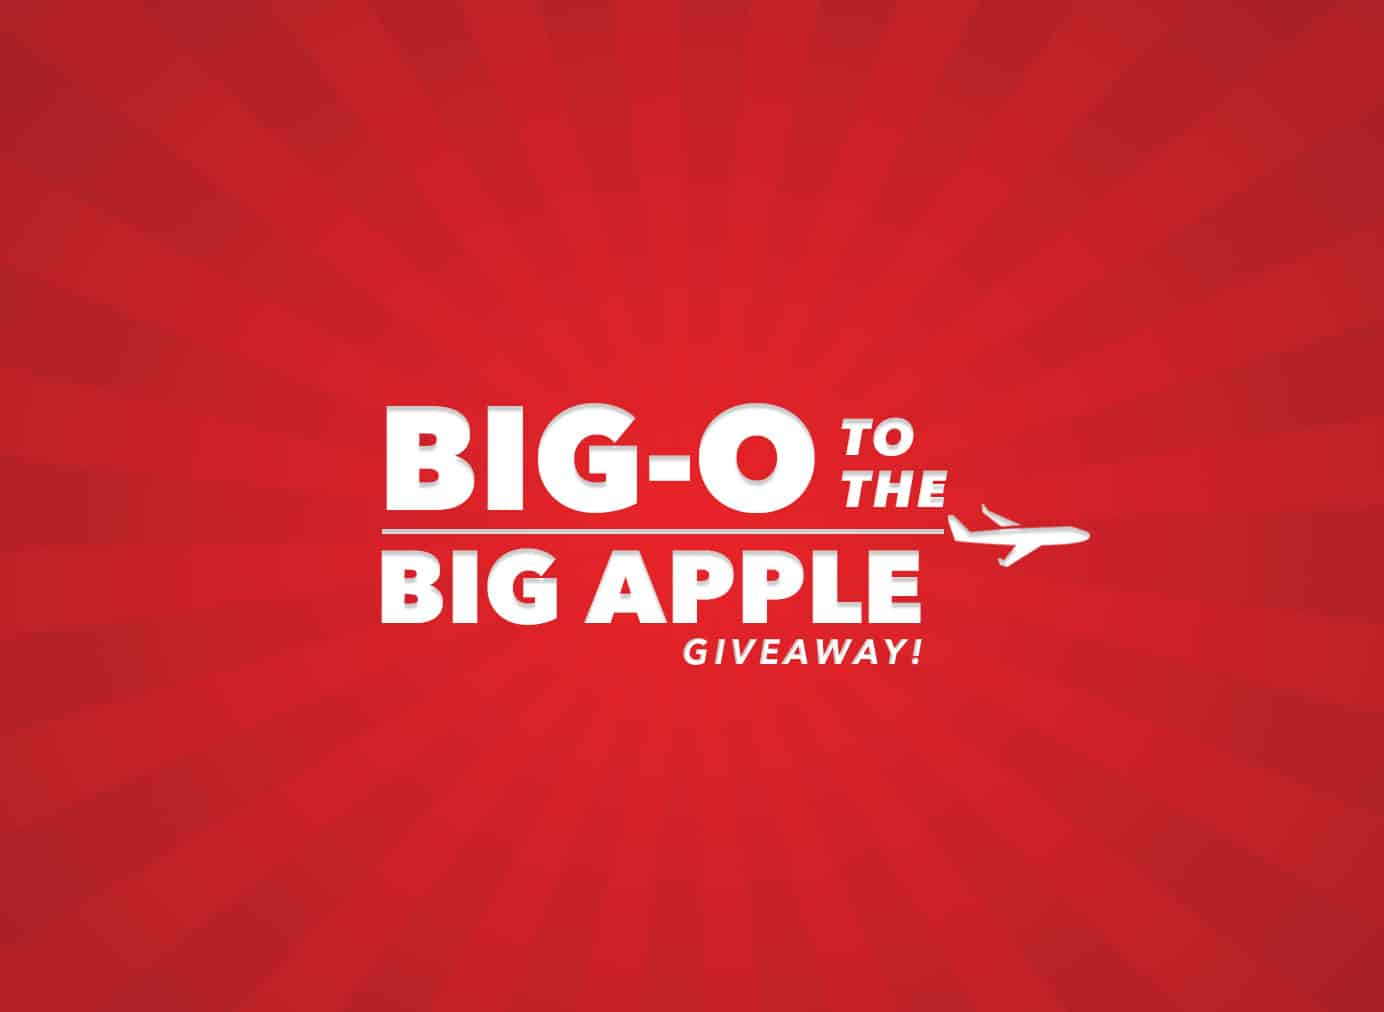 Big O to the Big Apple Giveaway - Zio's Pizza